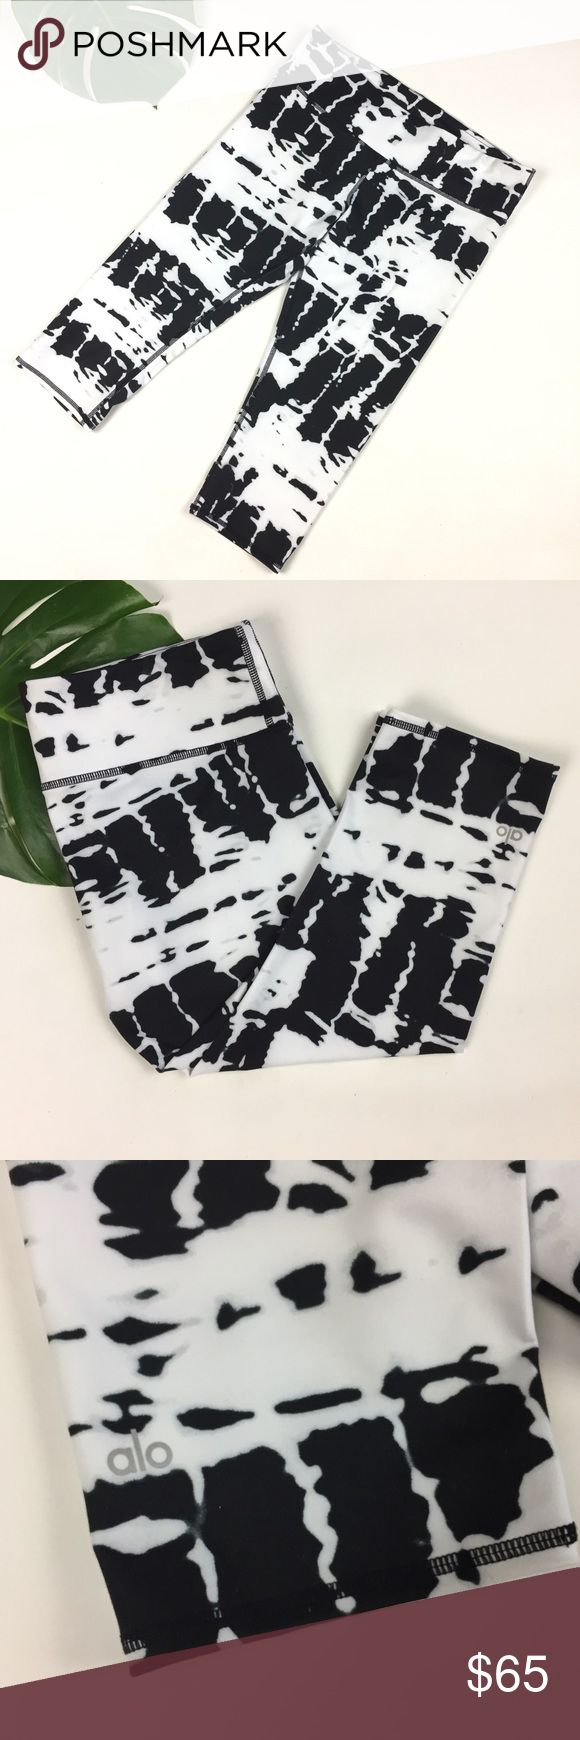 """ALO // sz L yoga capri legging tie dye wide band ALO // womens ladies size sz L Large yoga capri length legging tie dye black and white spots spotted  wide band waist athletic gym barre ballet crossfit pilates weightlifting running competition fitness gym athleisure sporty chic cool glam exercise soul cycle zumba  Very good used condition , 18"""" inseam , with hidden key pocket tucked in waistband , logo printed on bottom leg ALO Yoga Pants Leggings"""